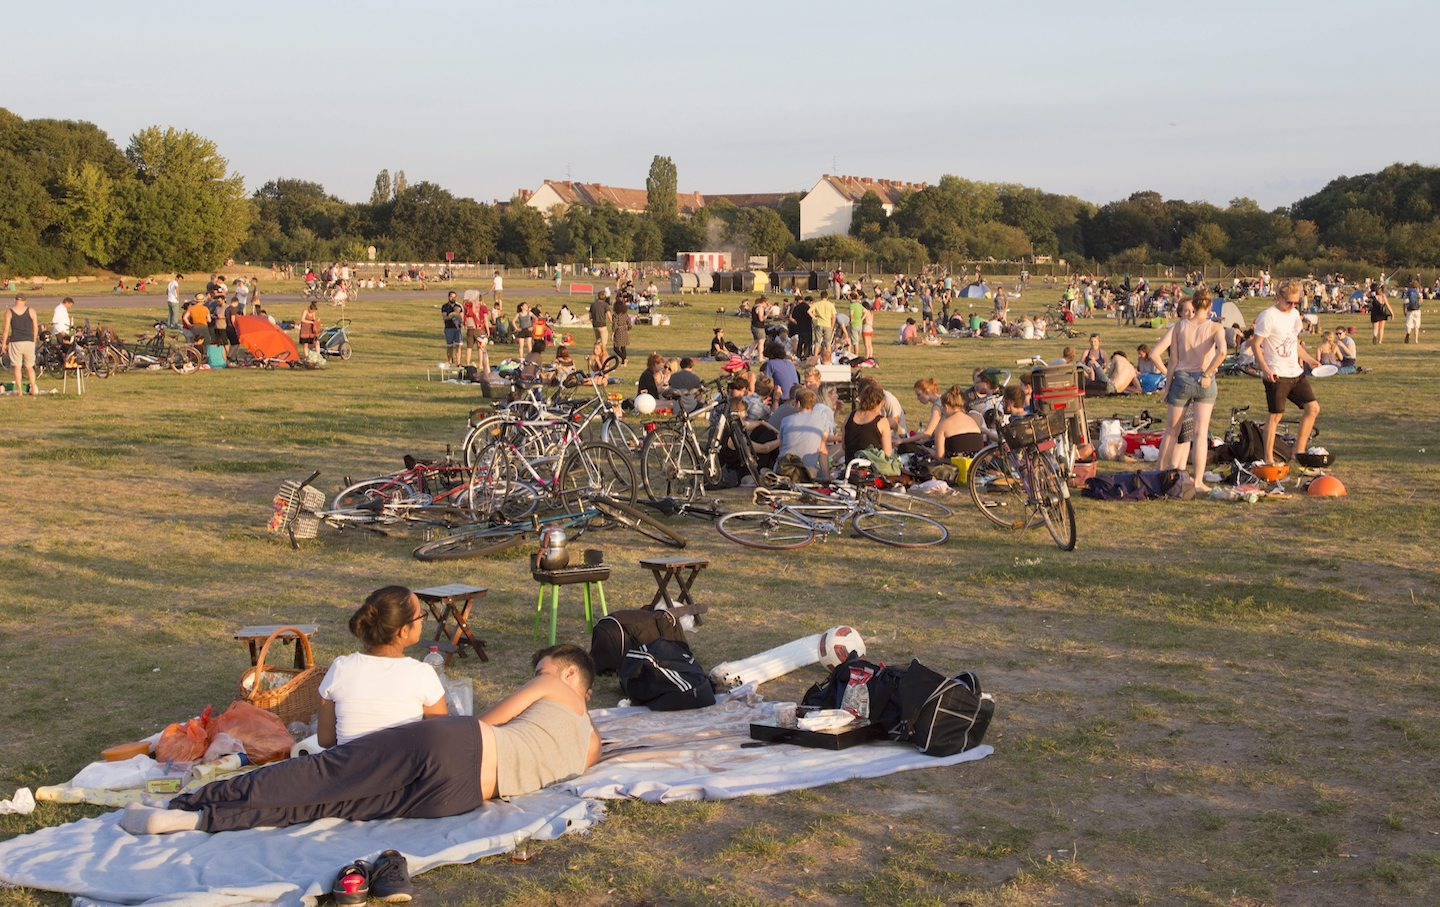 Picnickers at Berlin's Tempelhofer Feld, 2015.